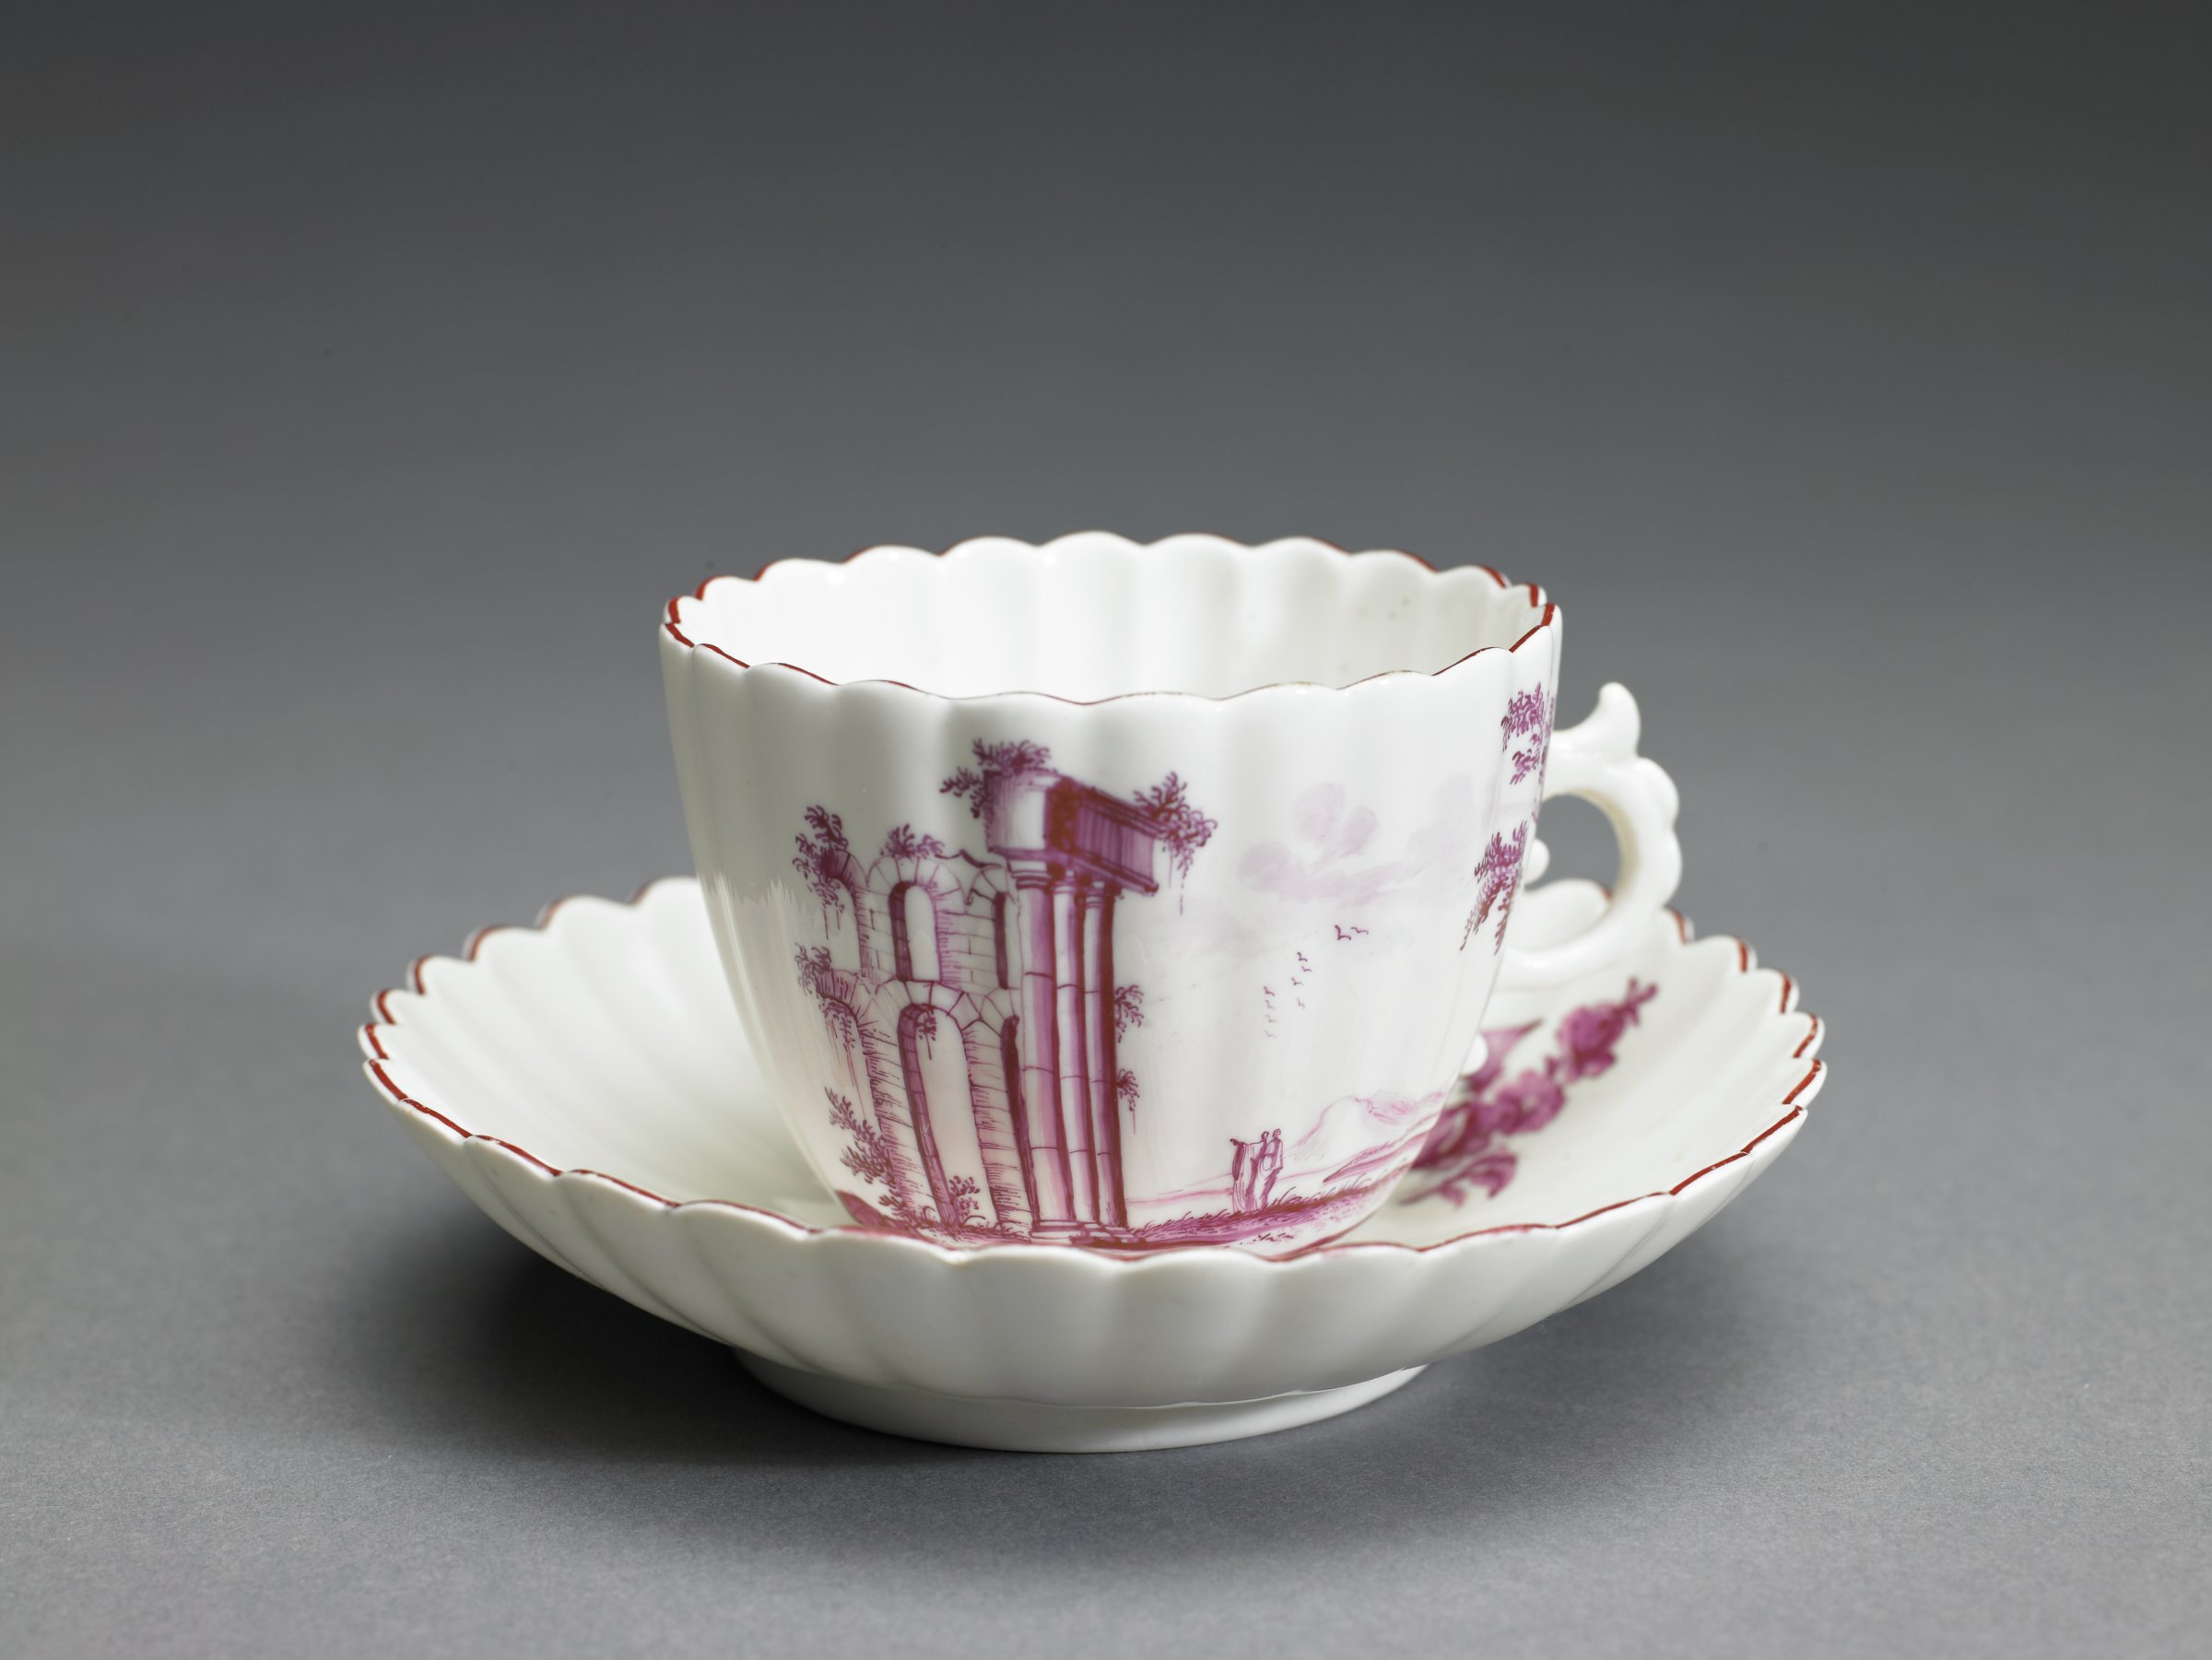 A soft-paste, white porcelain cup and saucer with overglaze puce enamel color, the cup fluted and with scalloped edge, painted with a design of ruins in a landscape, with scroll handle, the conforming saucer likewise fluted and with scalloped edge and painted with a similar design.